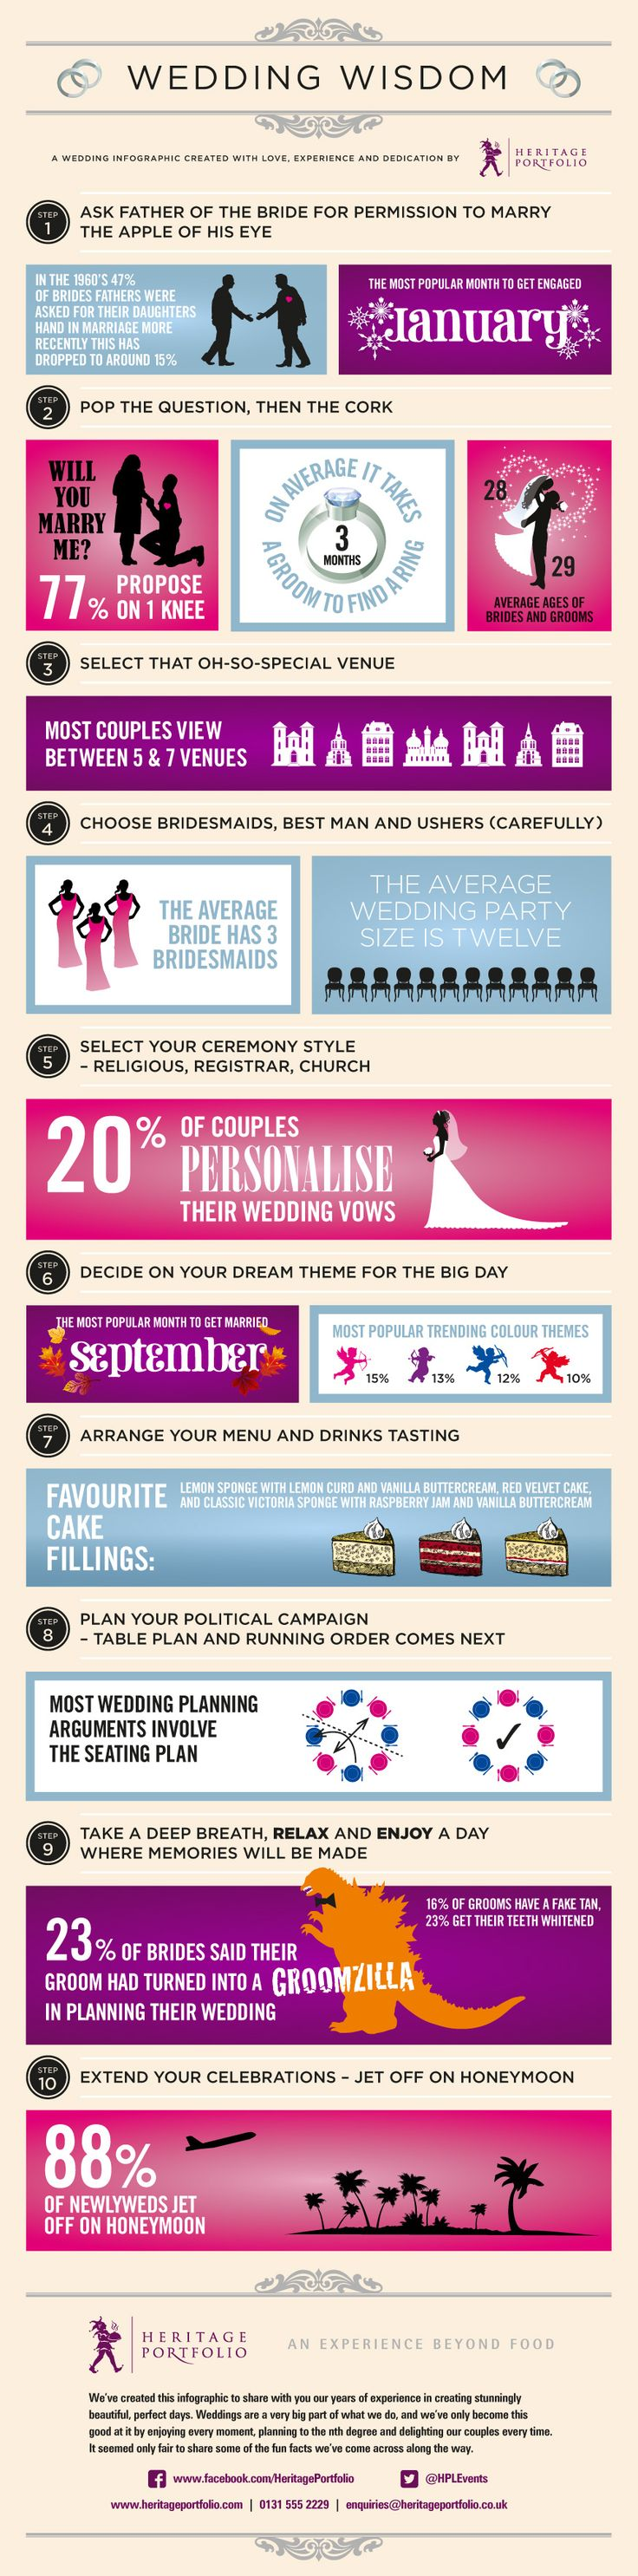 Wedding Wisdom infographic. Practial advise. watch wedding films at filmstrong.com